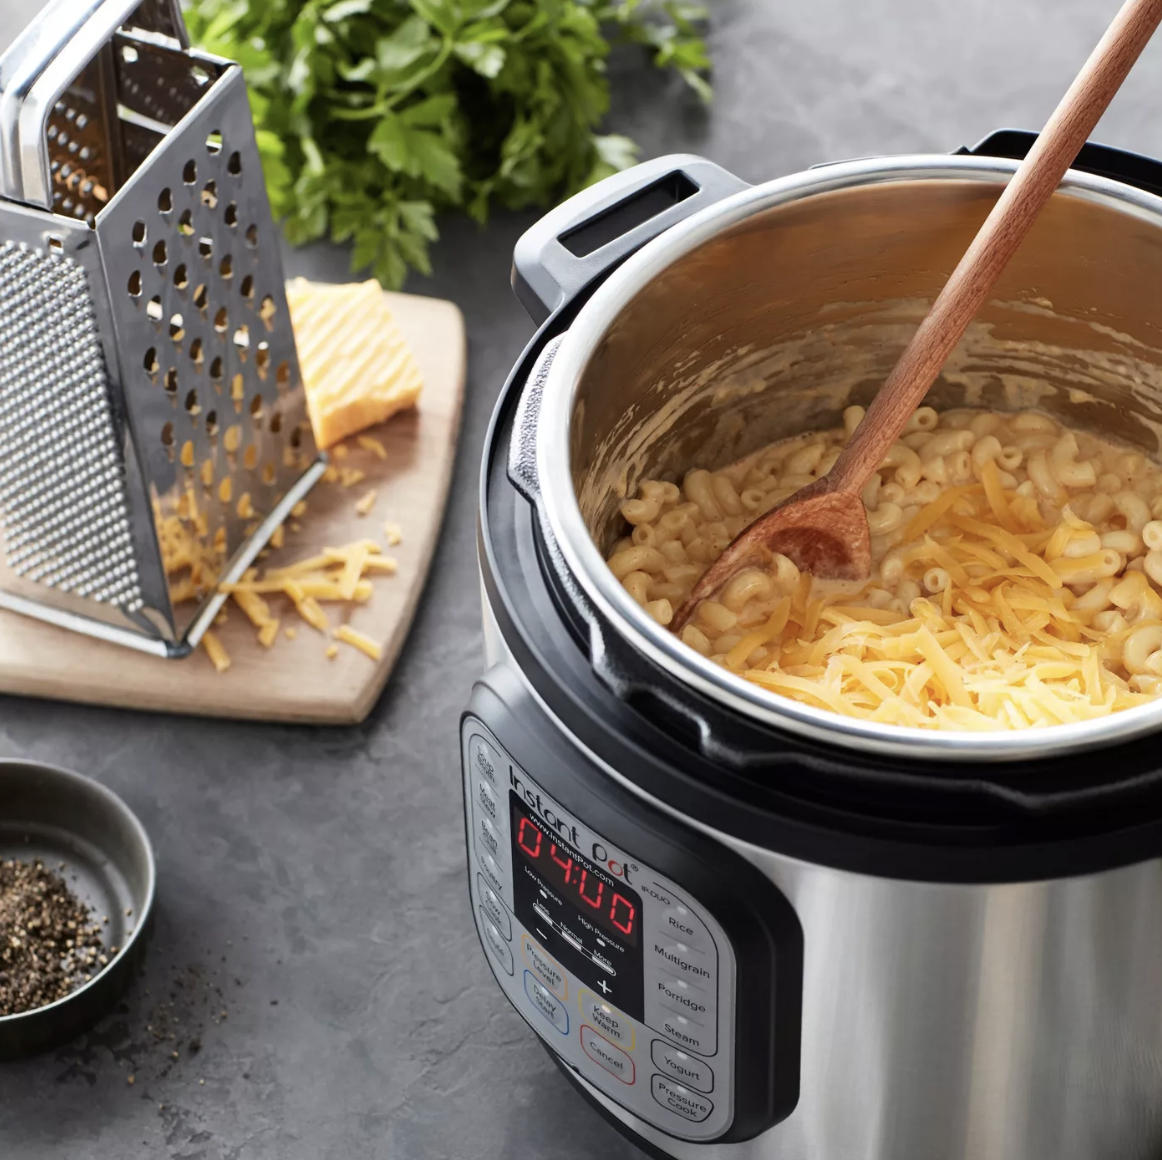 The instant pot full of mac and cheese